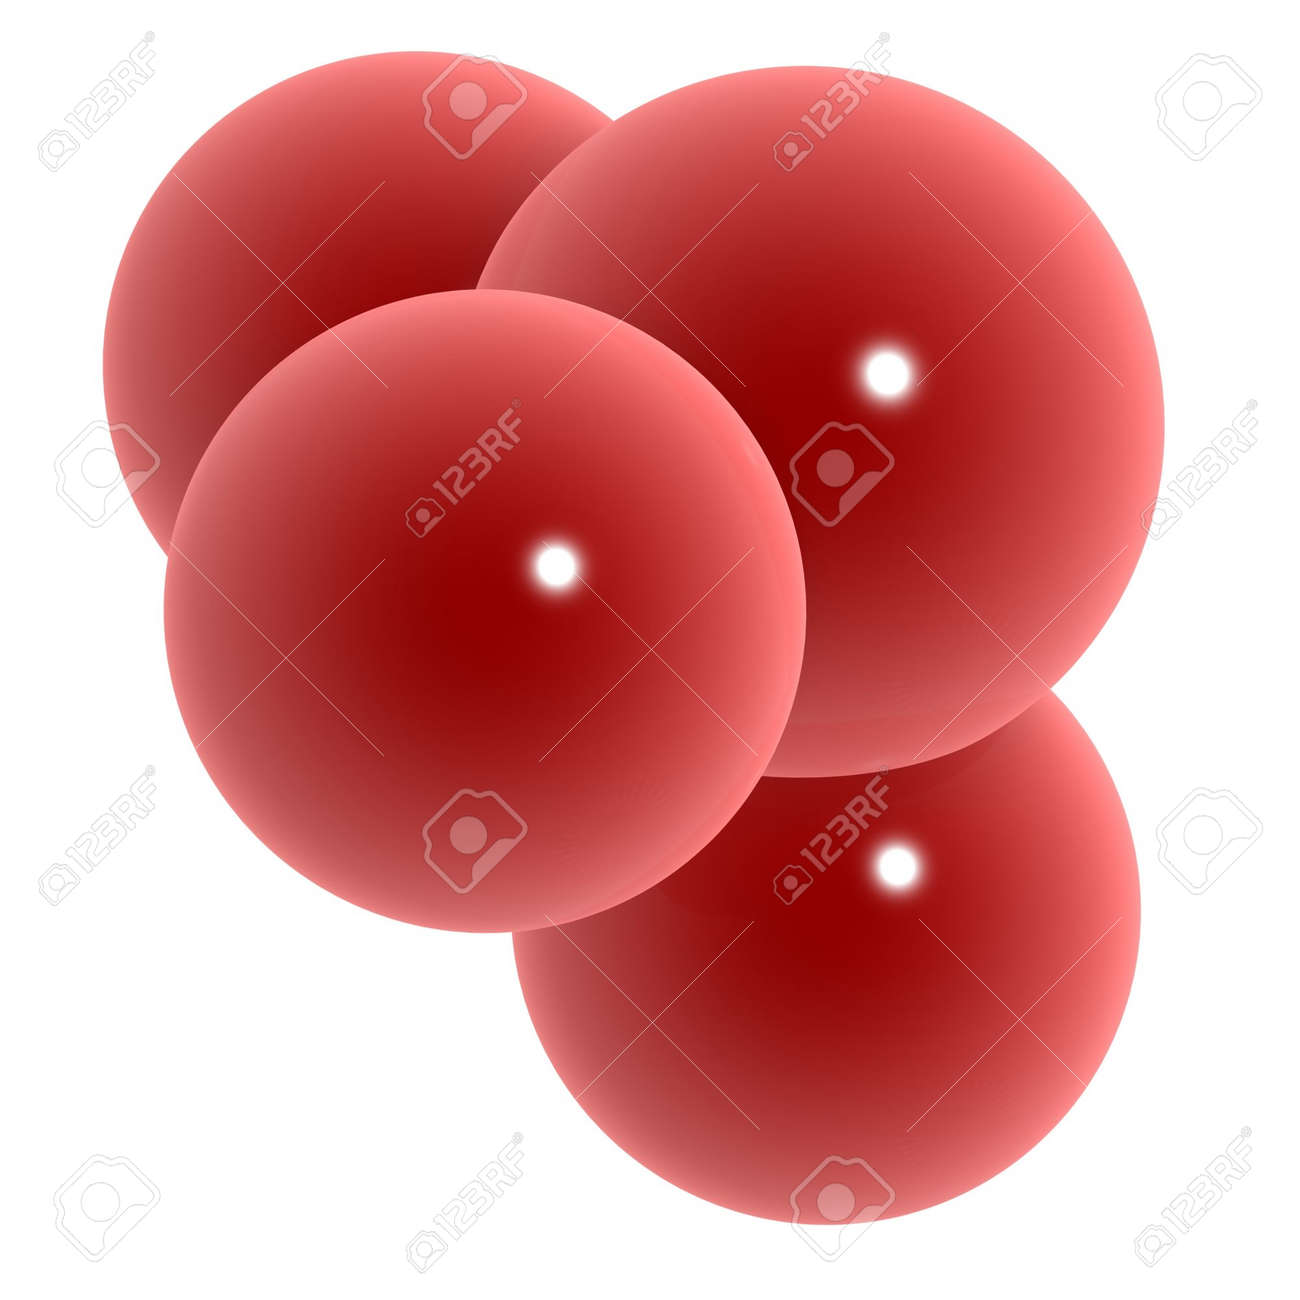 3d red cells isolated on white background Stock Photo - 2819083